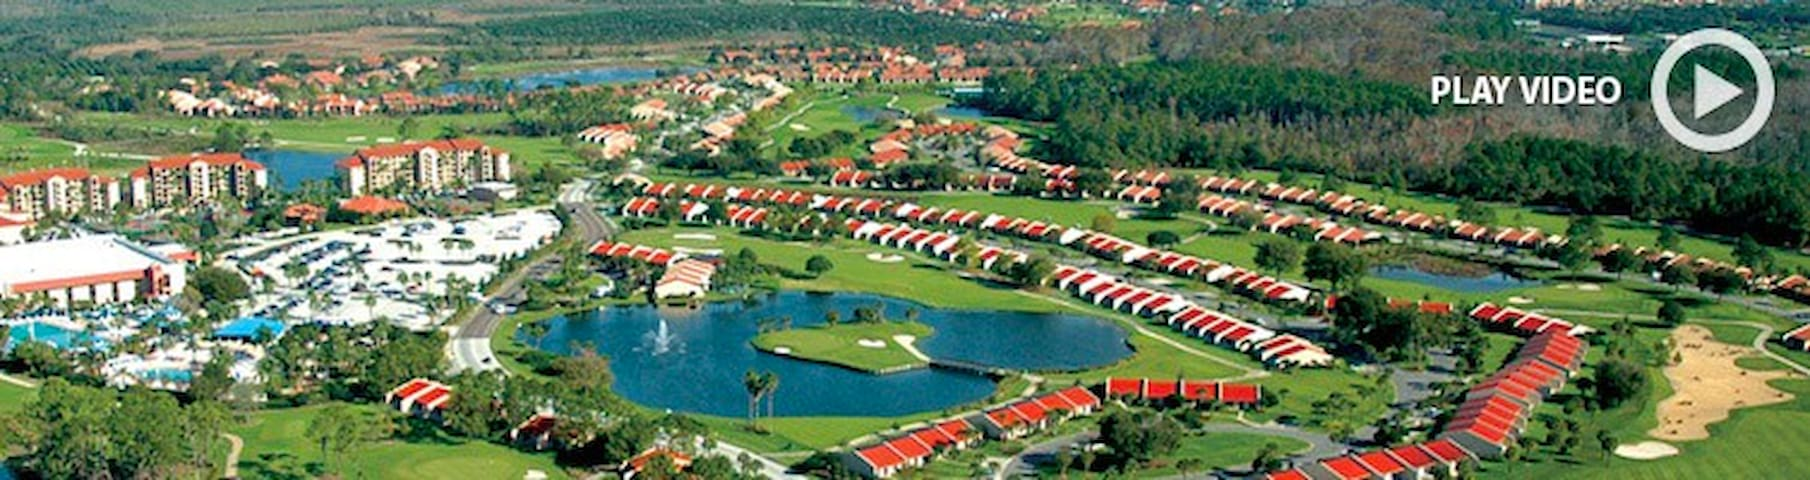 BEAUTIFUL RESORT NEXT TO DISNEY WORLD. tu cuando